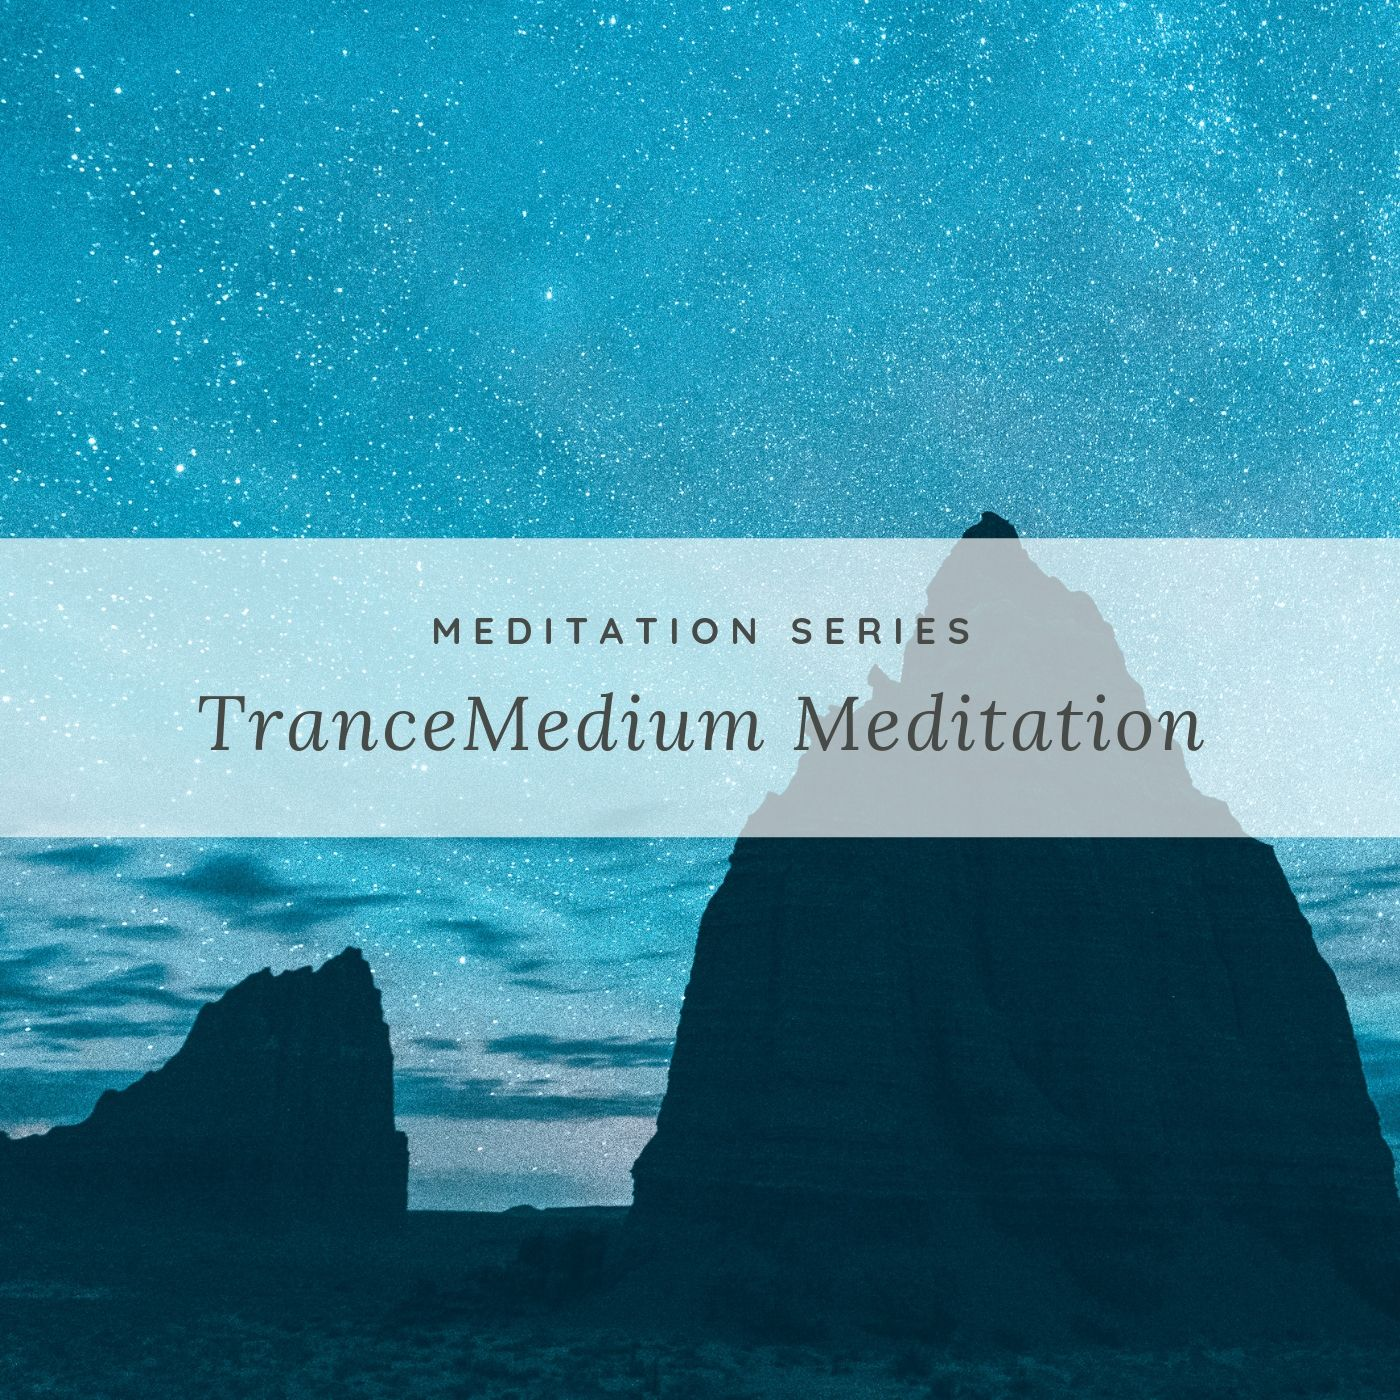 Night Sky with Mountains Meditation Program Cover.jpg